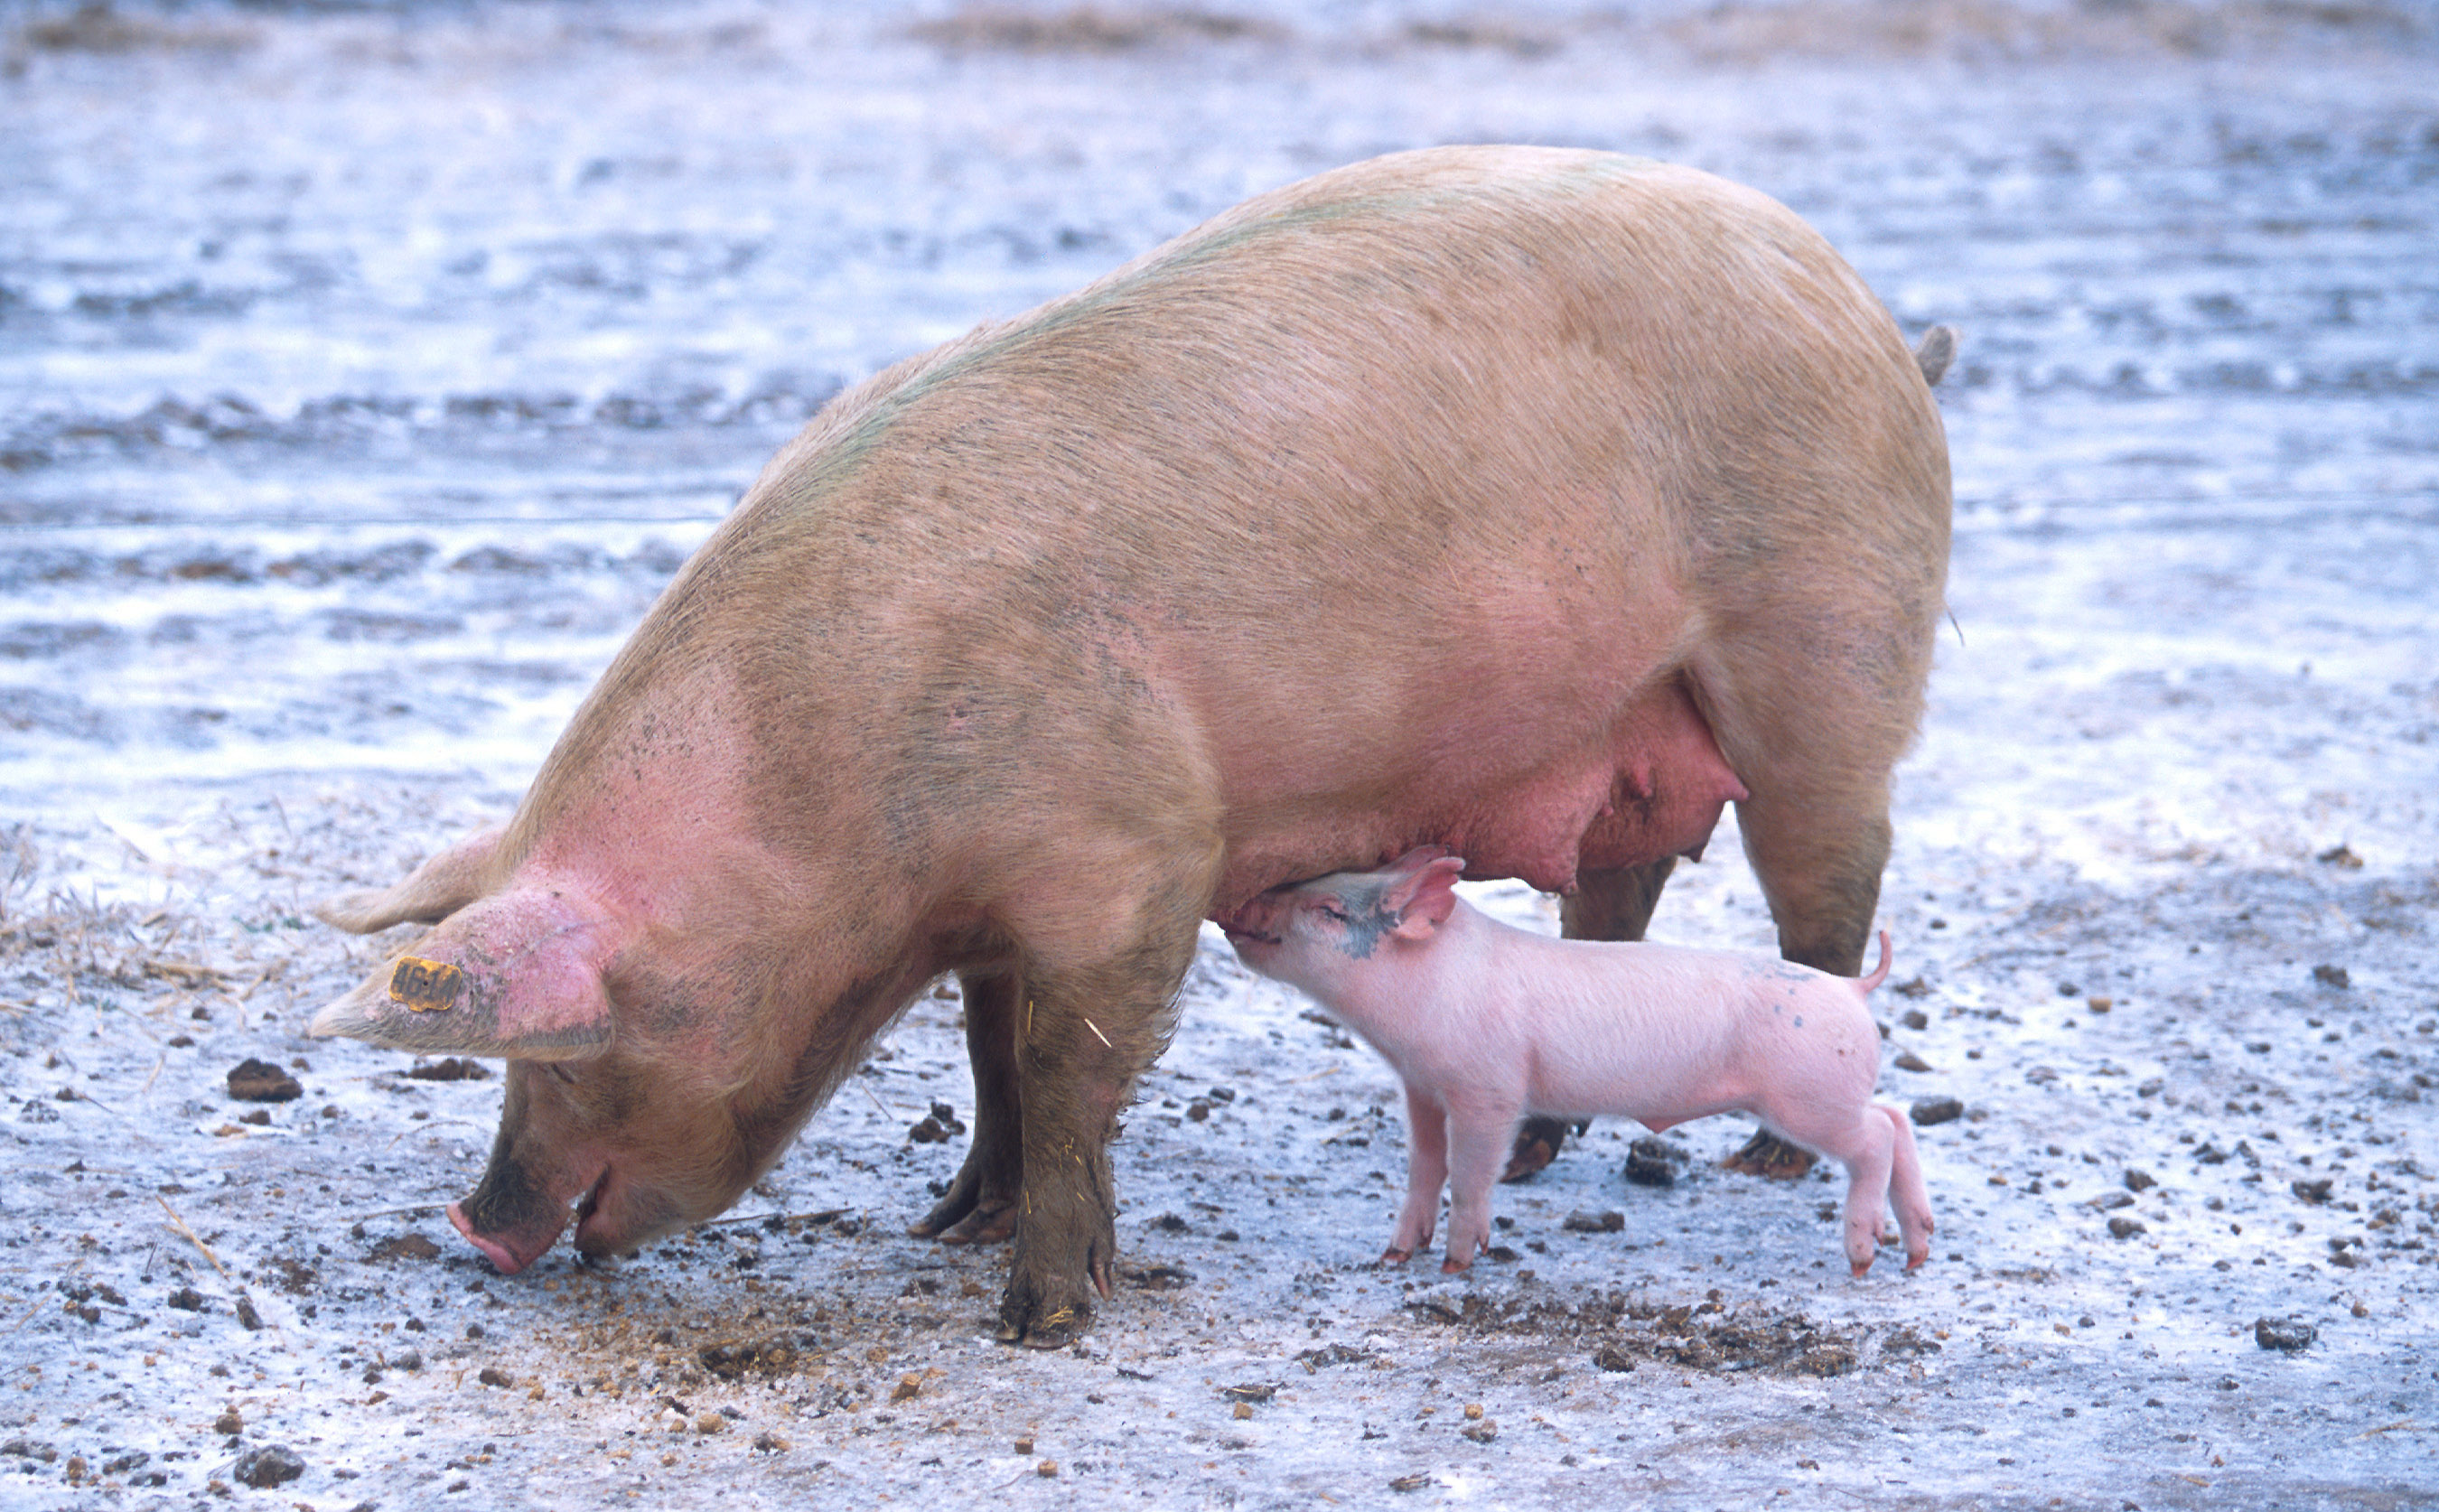 http://upload.wikimedia.org/wikipedia/commons/5/59/Sow_with_piglet.jpg